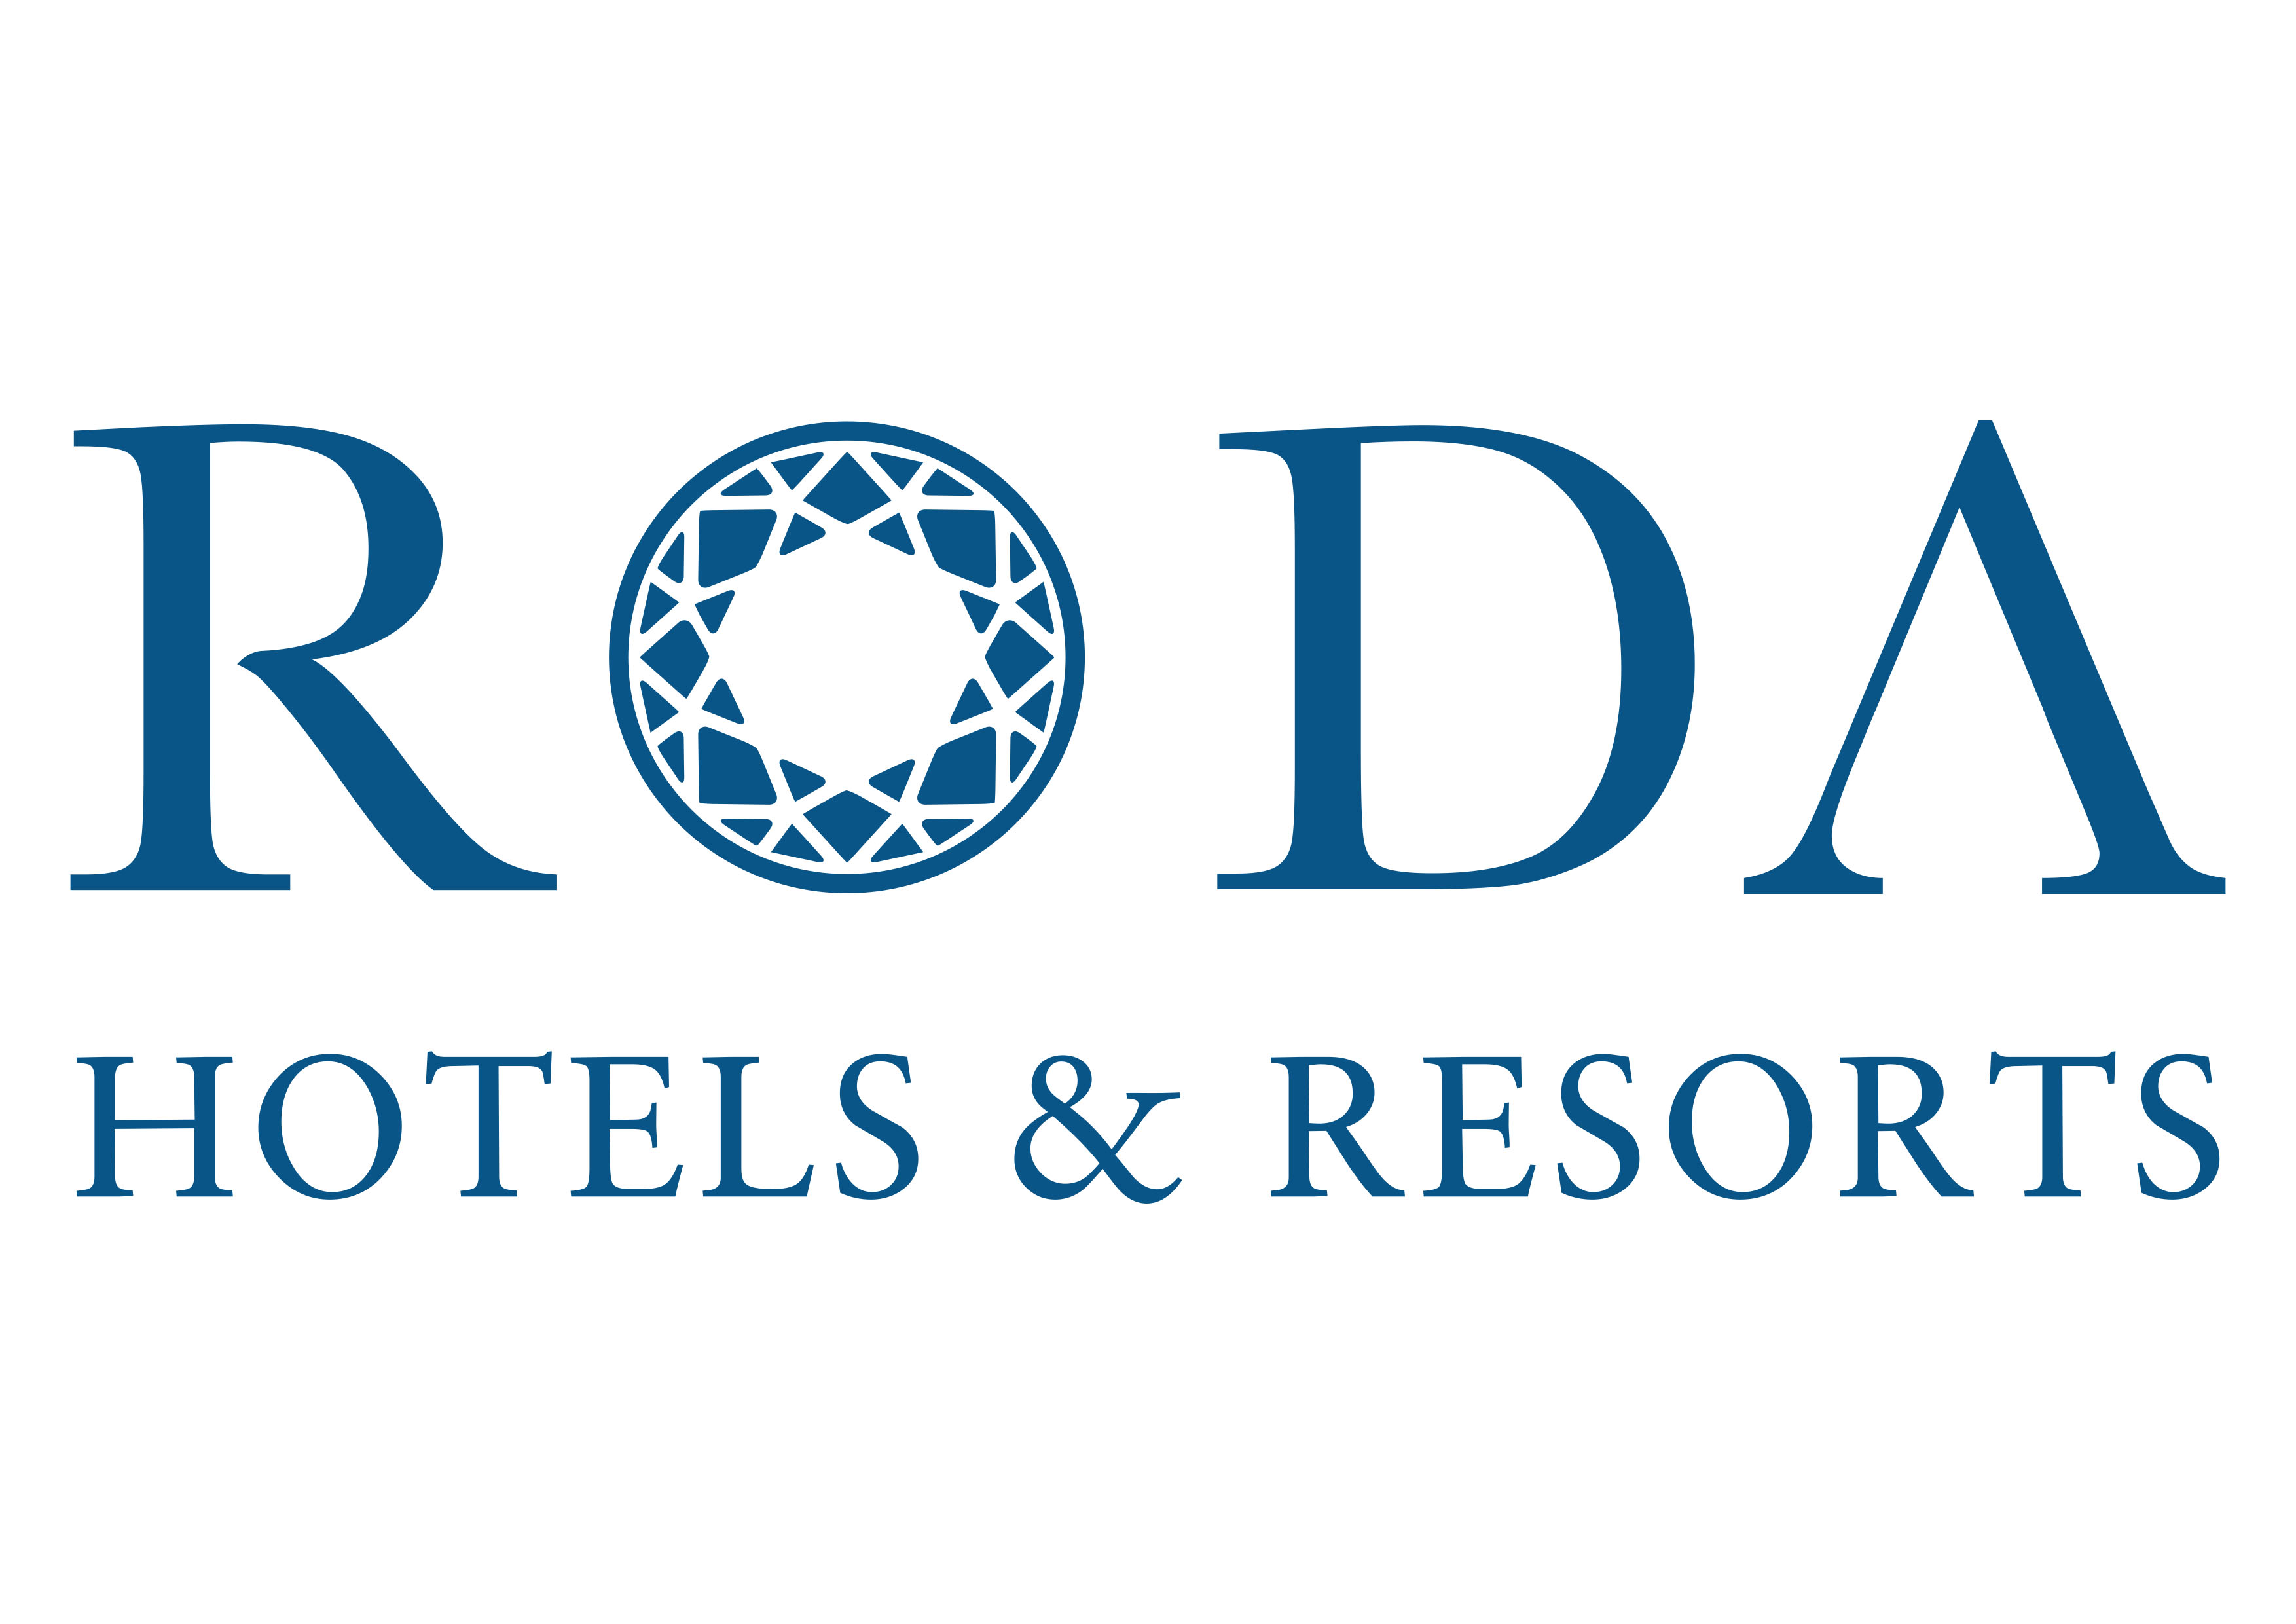 Roda Hotel Management LLC